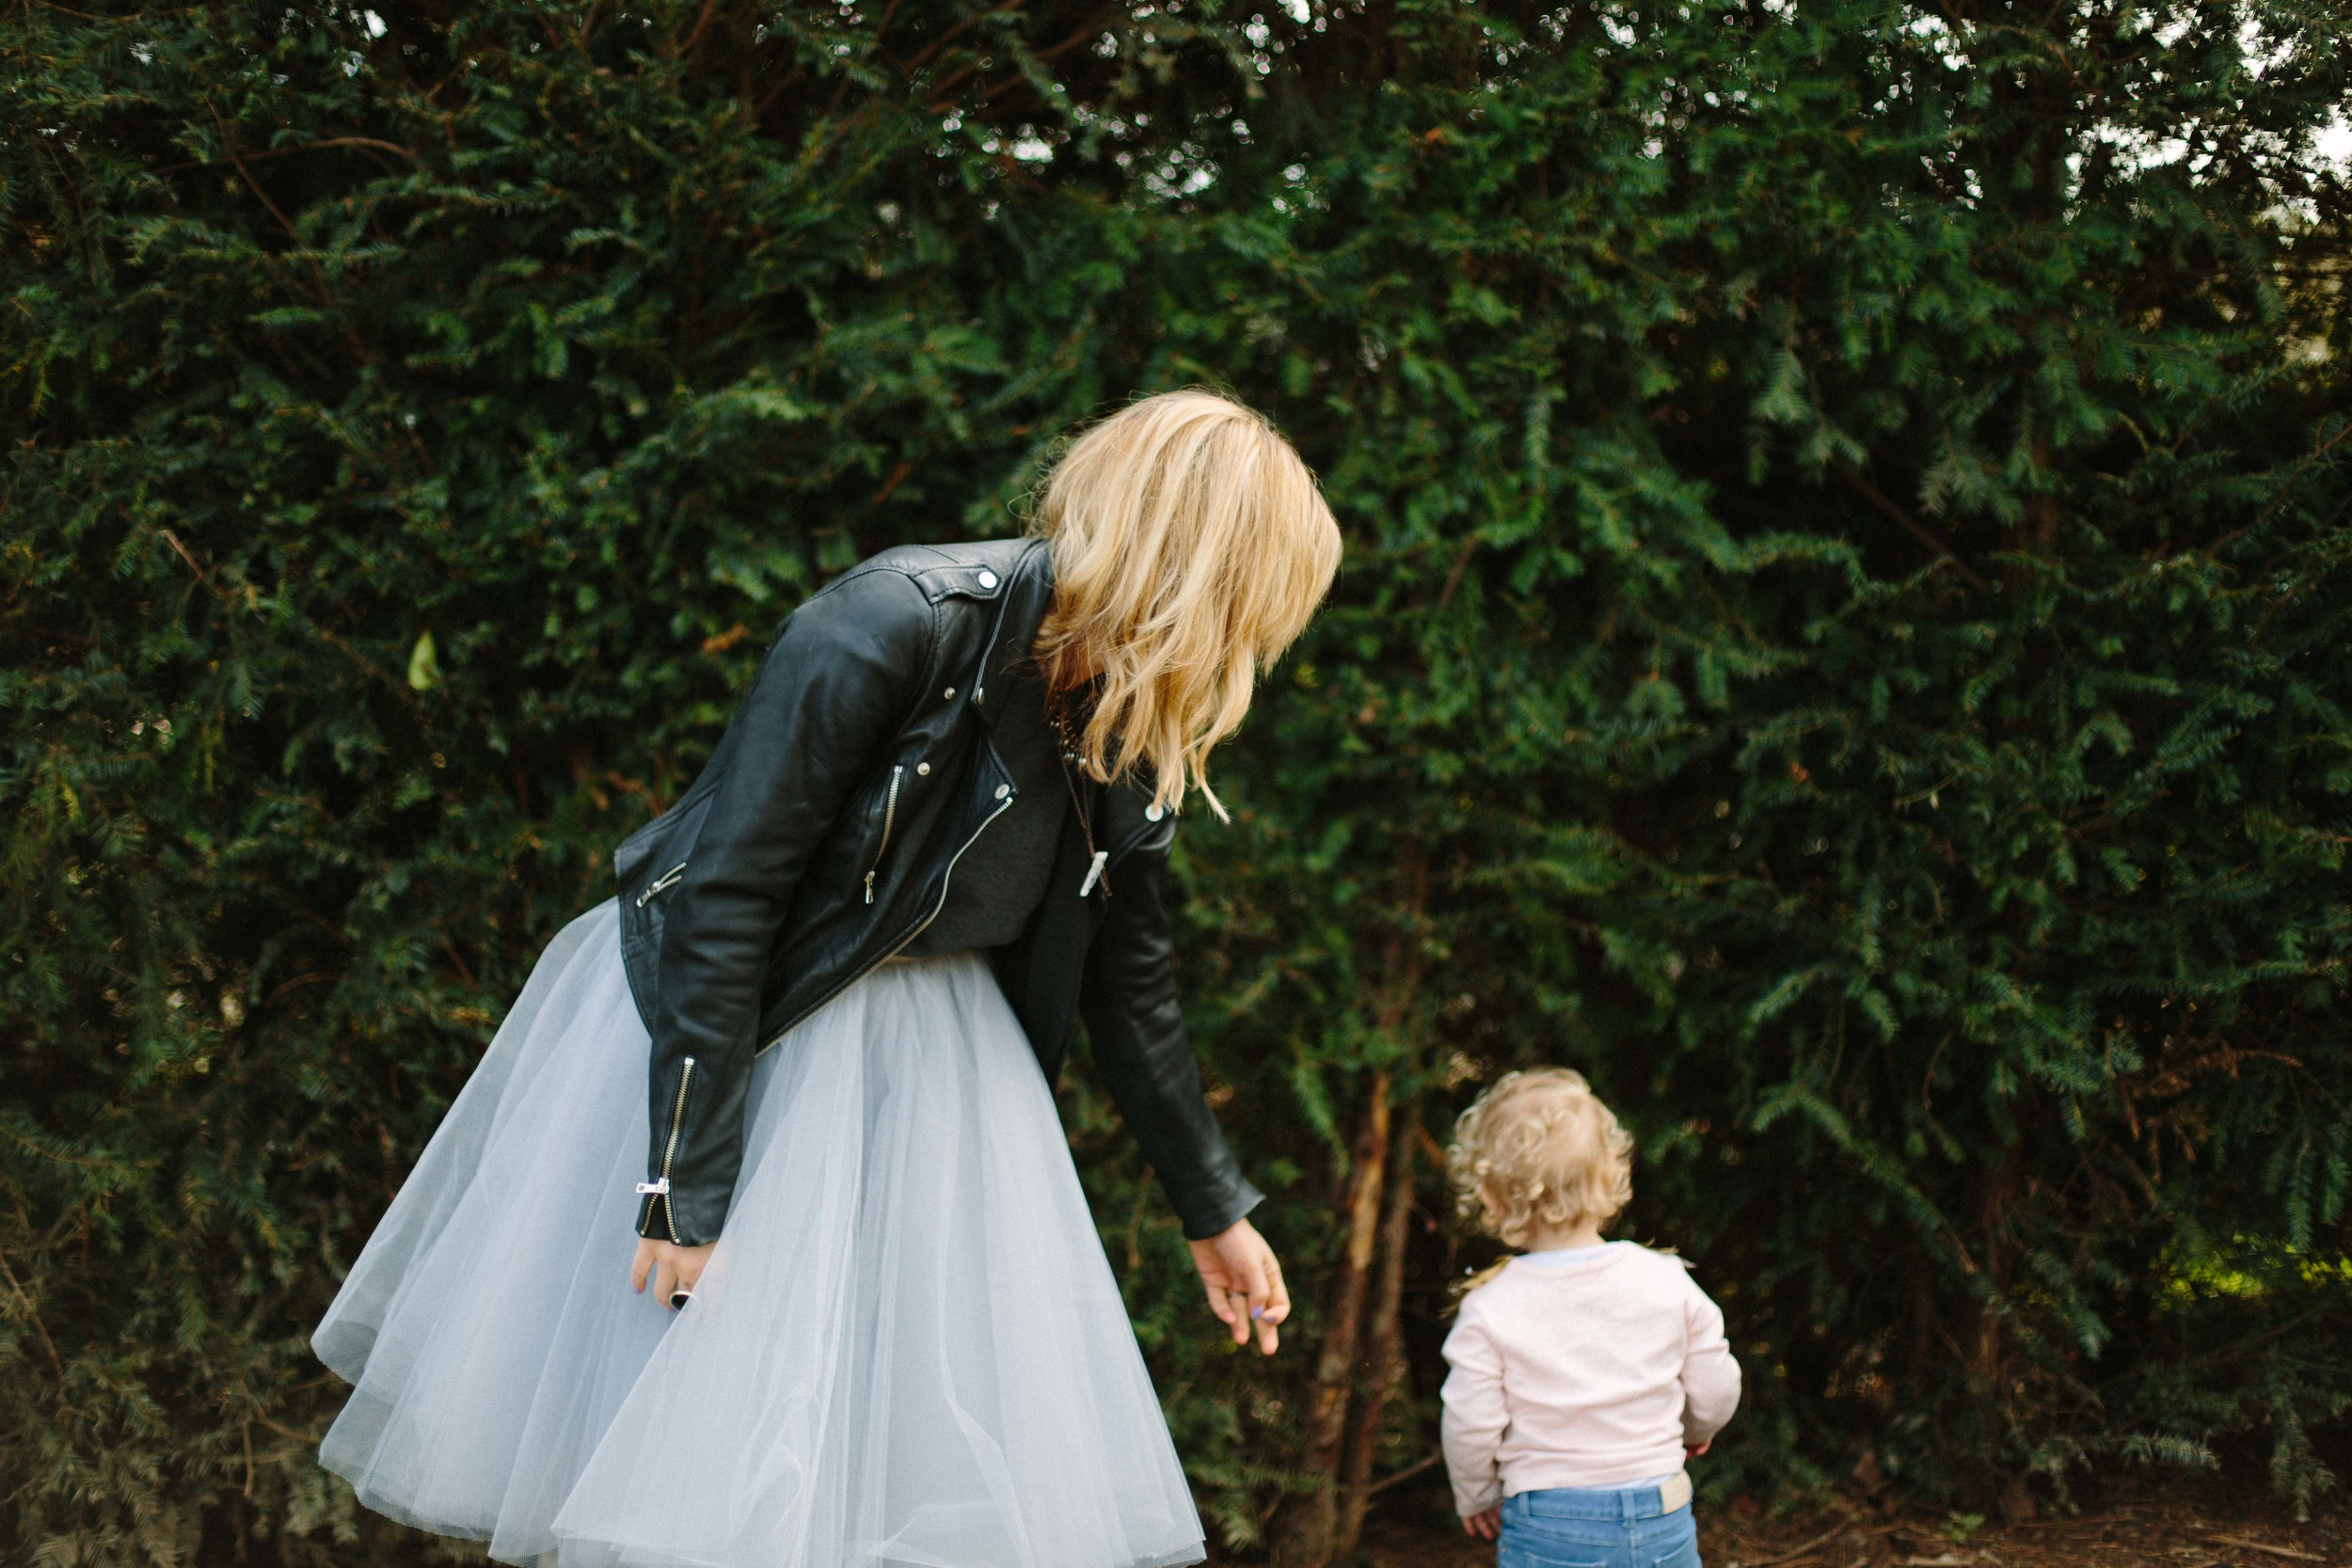 Zoe_mother_daughter_baby_family_photography_richmond_london-143.jpg